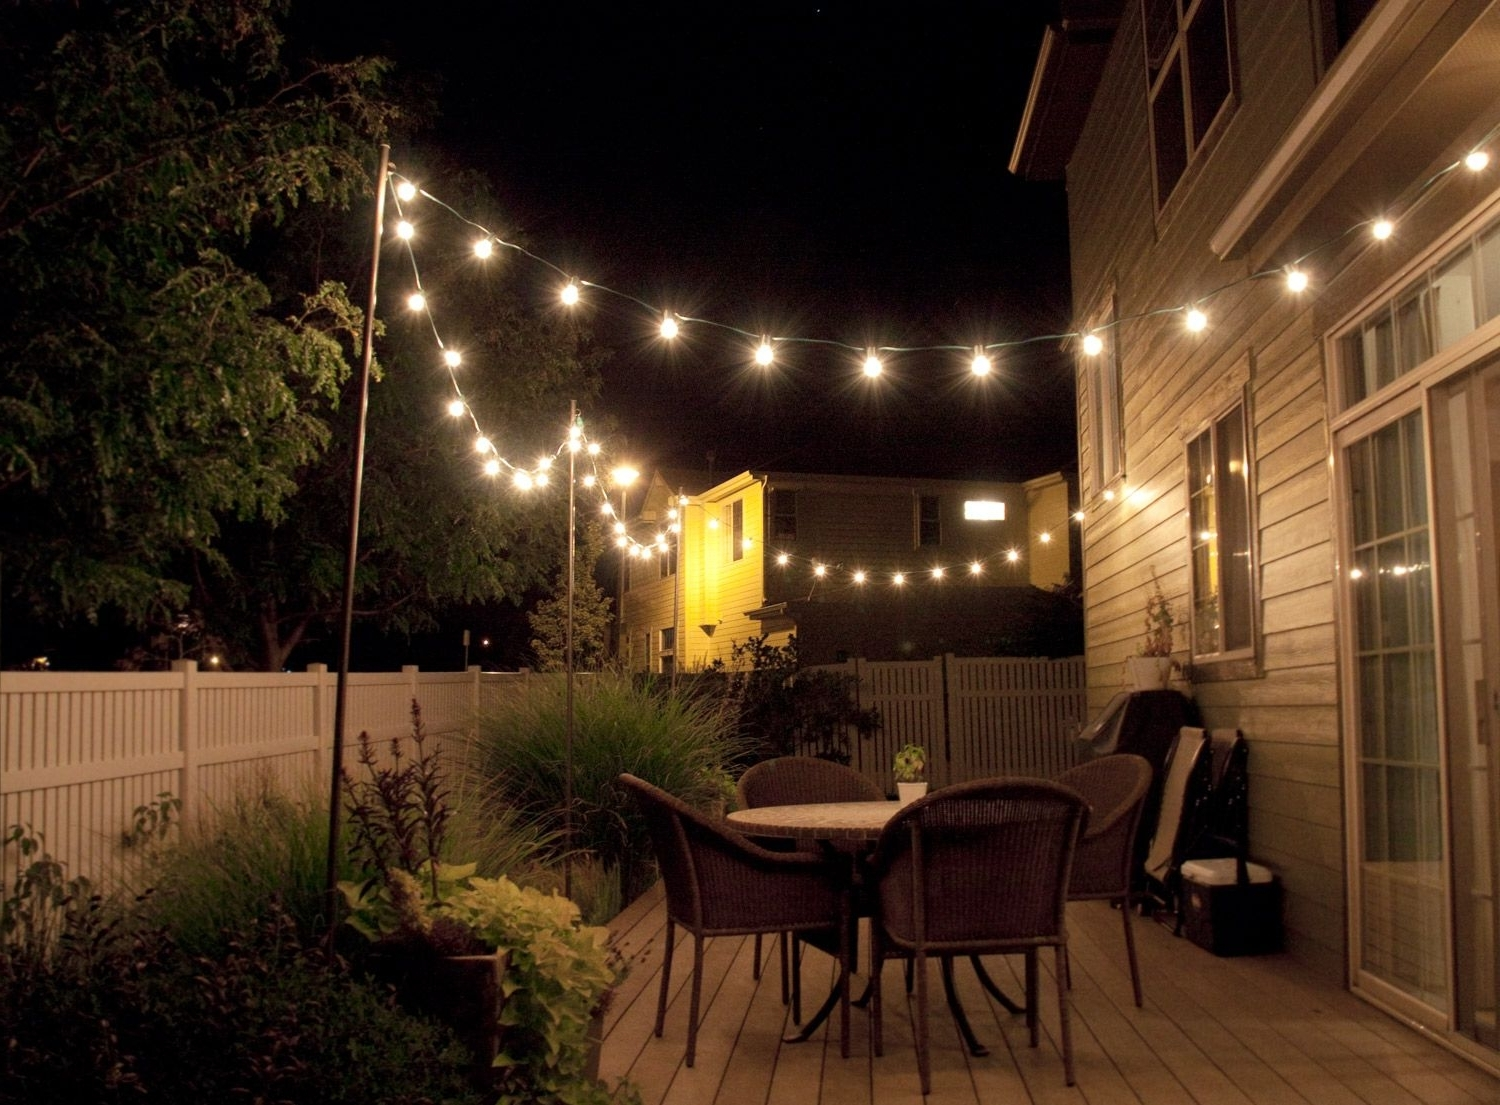 How To Make Inexpensive Poles To Hang String Lights On – Café Style With Regard To Well Known Hanging Outdoor Cafe Lights (View 13 of 20)